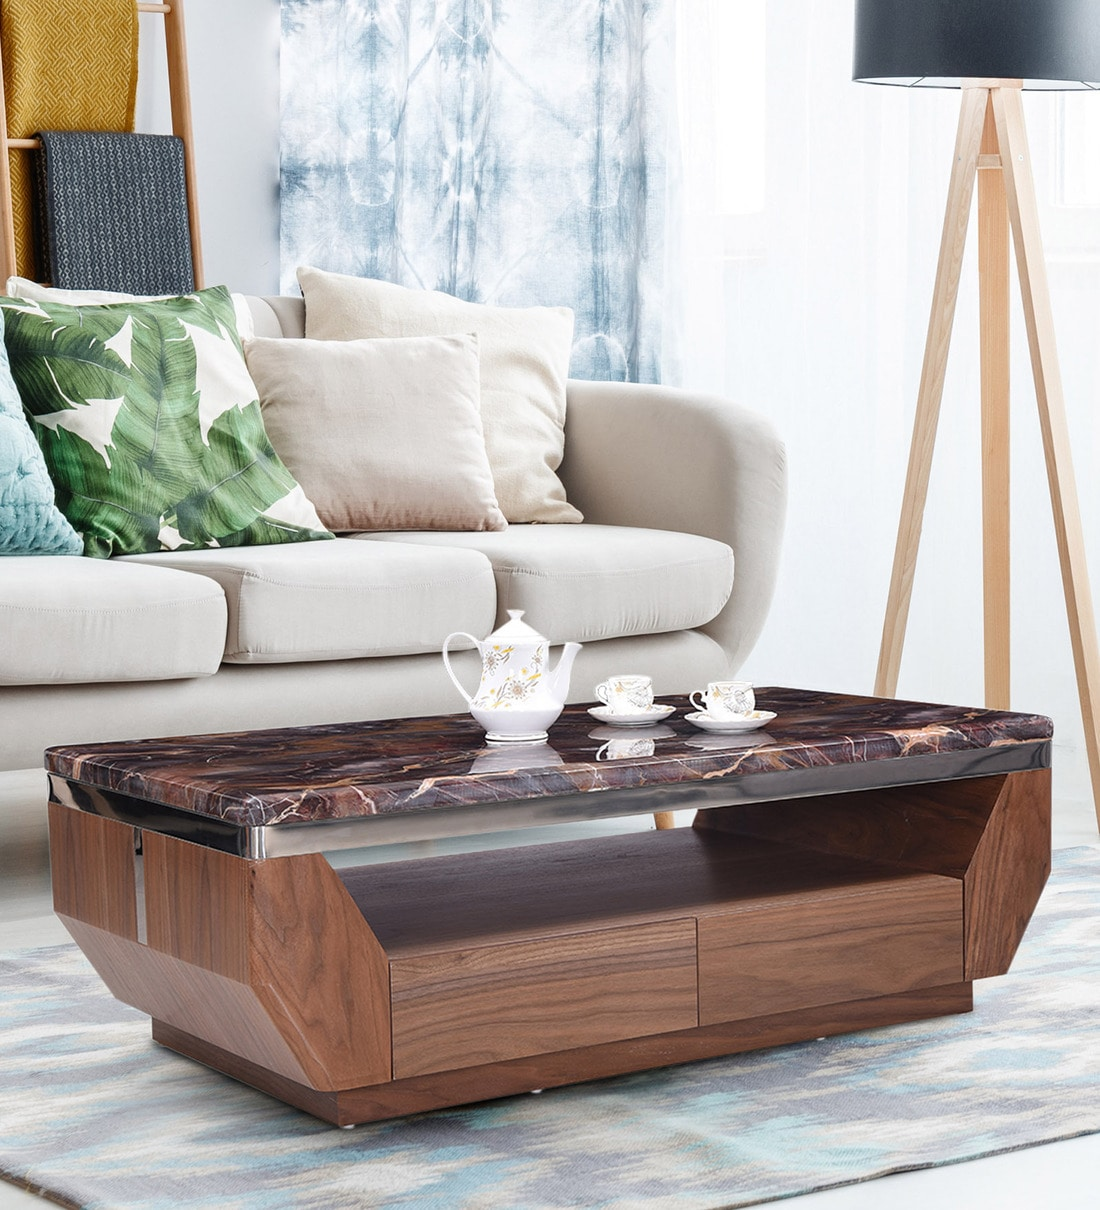 Buy Sania Italian Art Marble Coffee Table By Royaloak Online Contemporary Rectangular Coffee Tables Tables Furniture Pepperfry Product